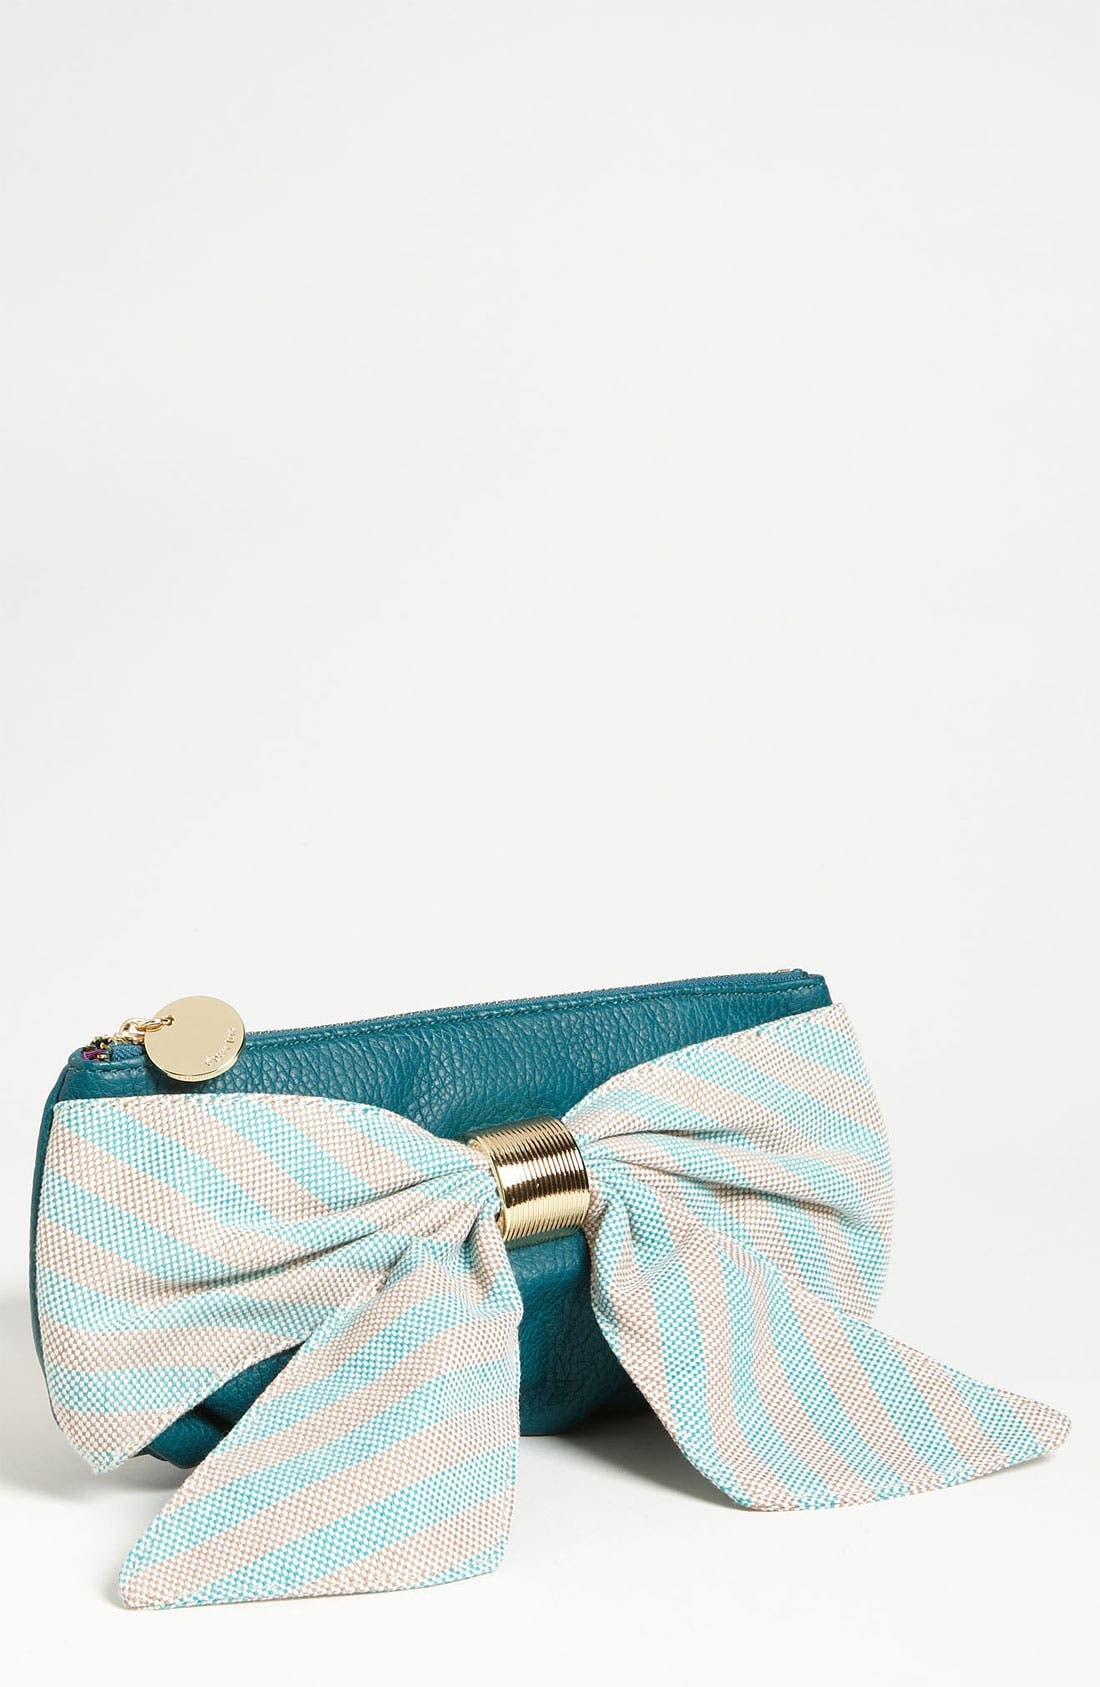 Alternate Image 1 Selected - Deux Lux 'Heidi Girl' Stripe Box Clutch